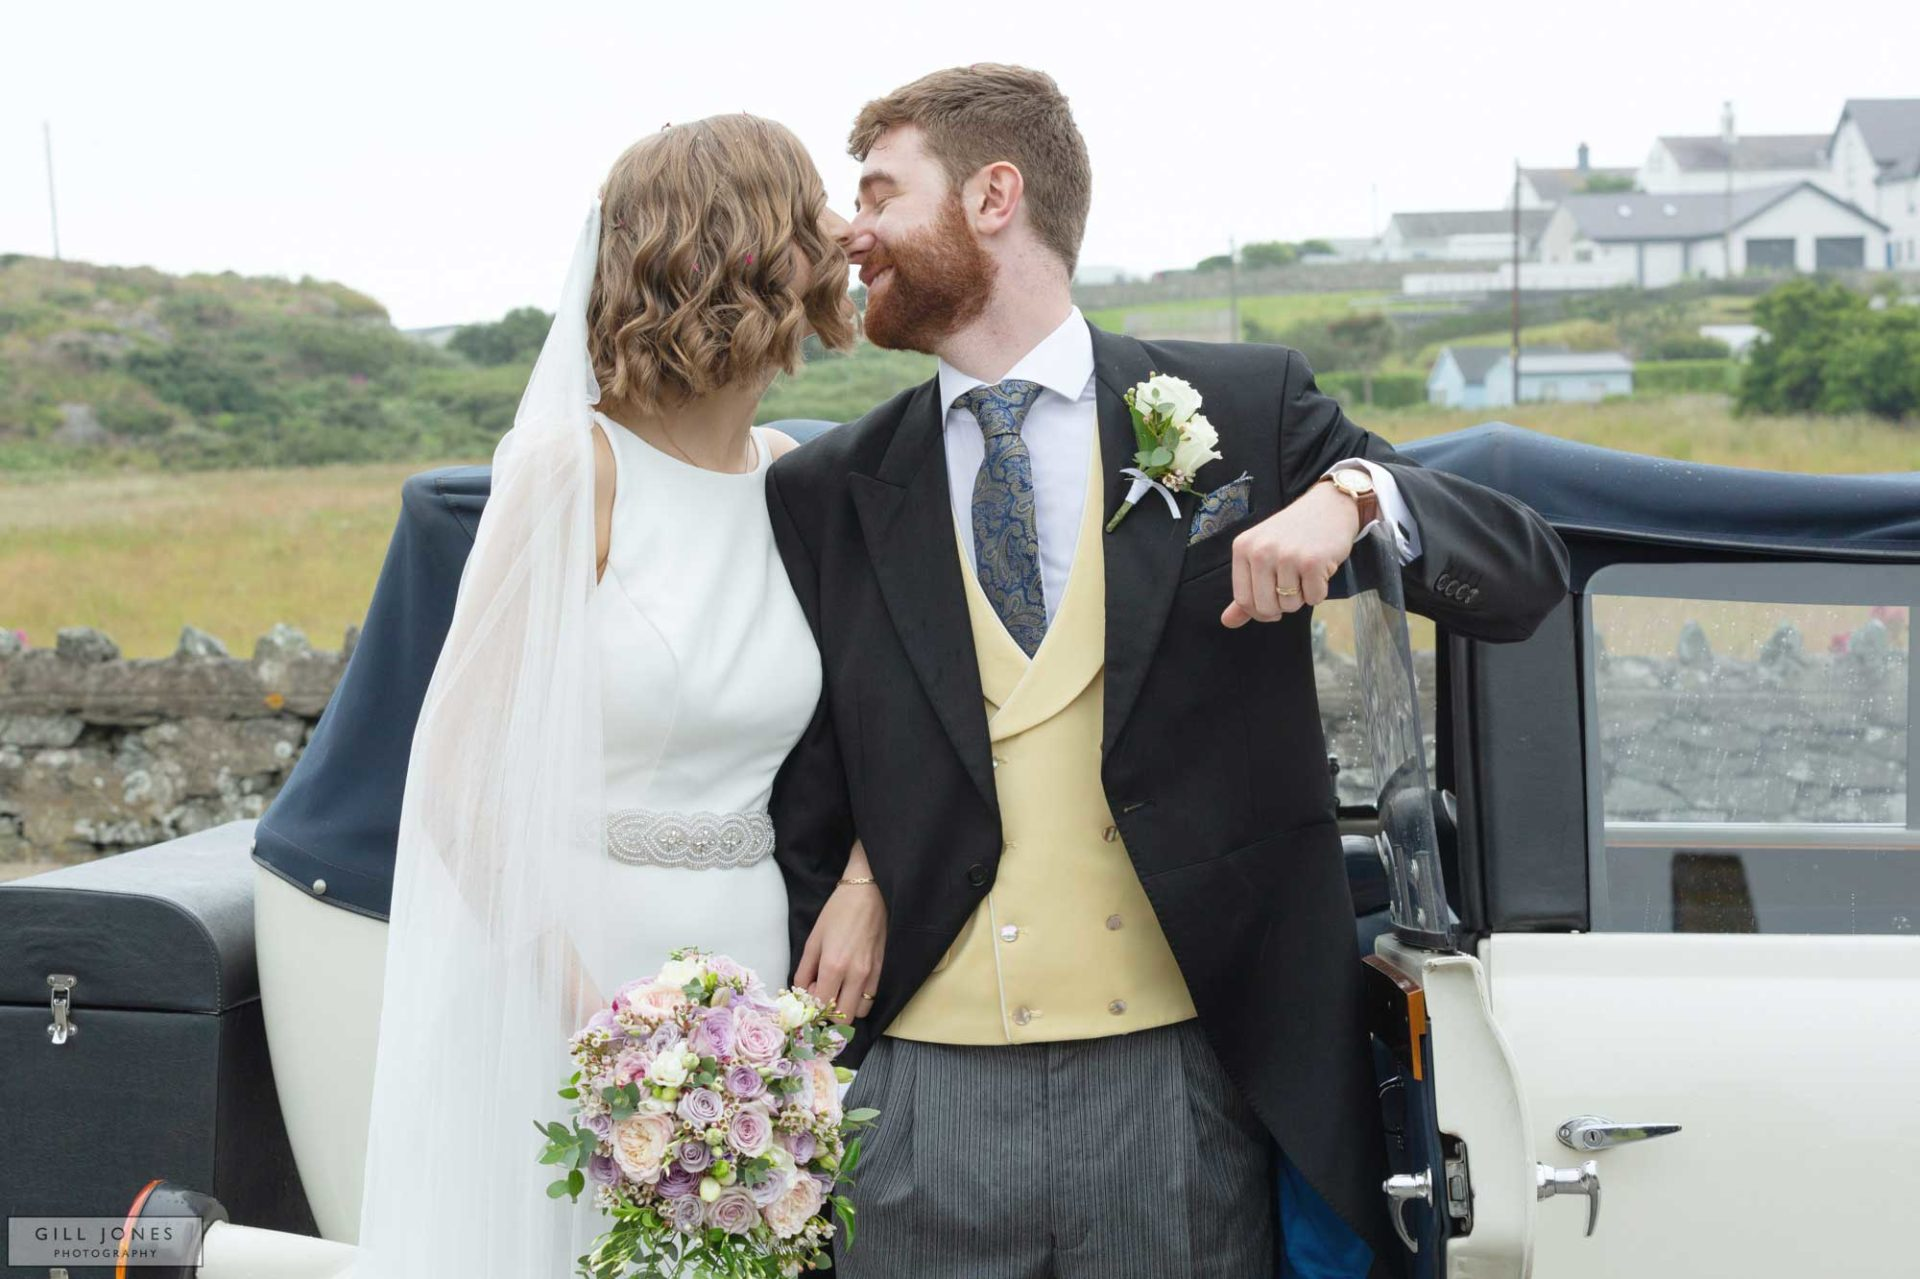 the bride and groom are just about to kiss whilst standing by a vintage wedding car